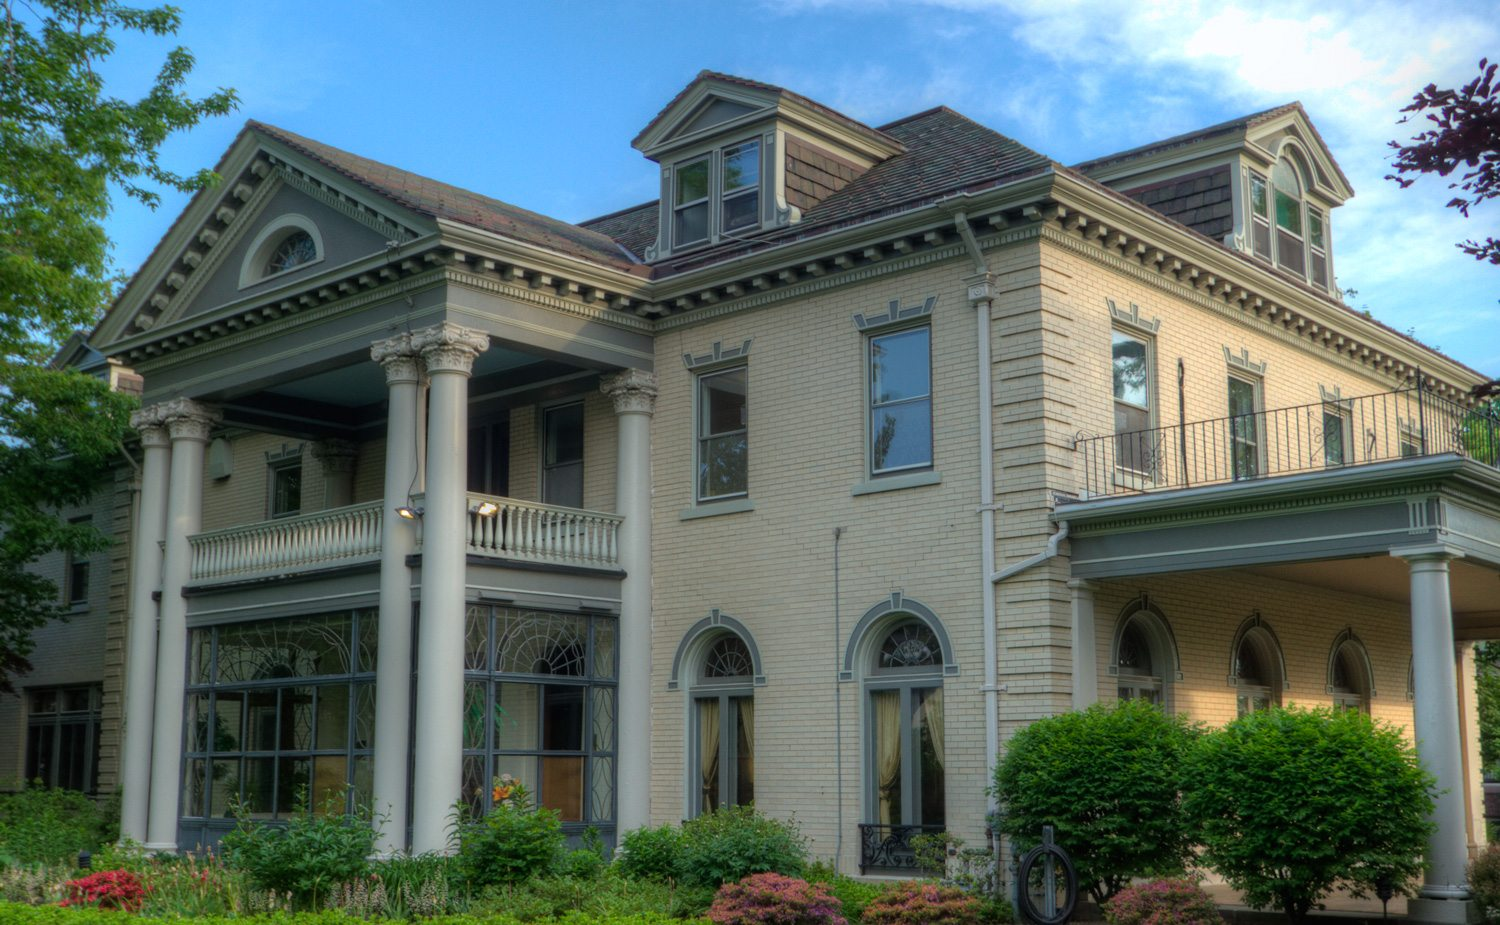 Buffalo State College President's House in Buffalo, NY. Hand and RAM pressed architectural terra cotta roof tiles manufactured by Boston Valley Terra Cotta.